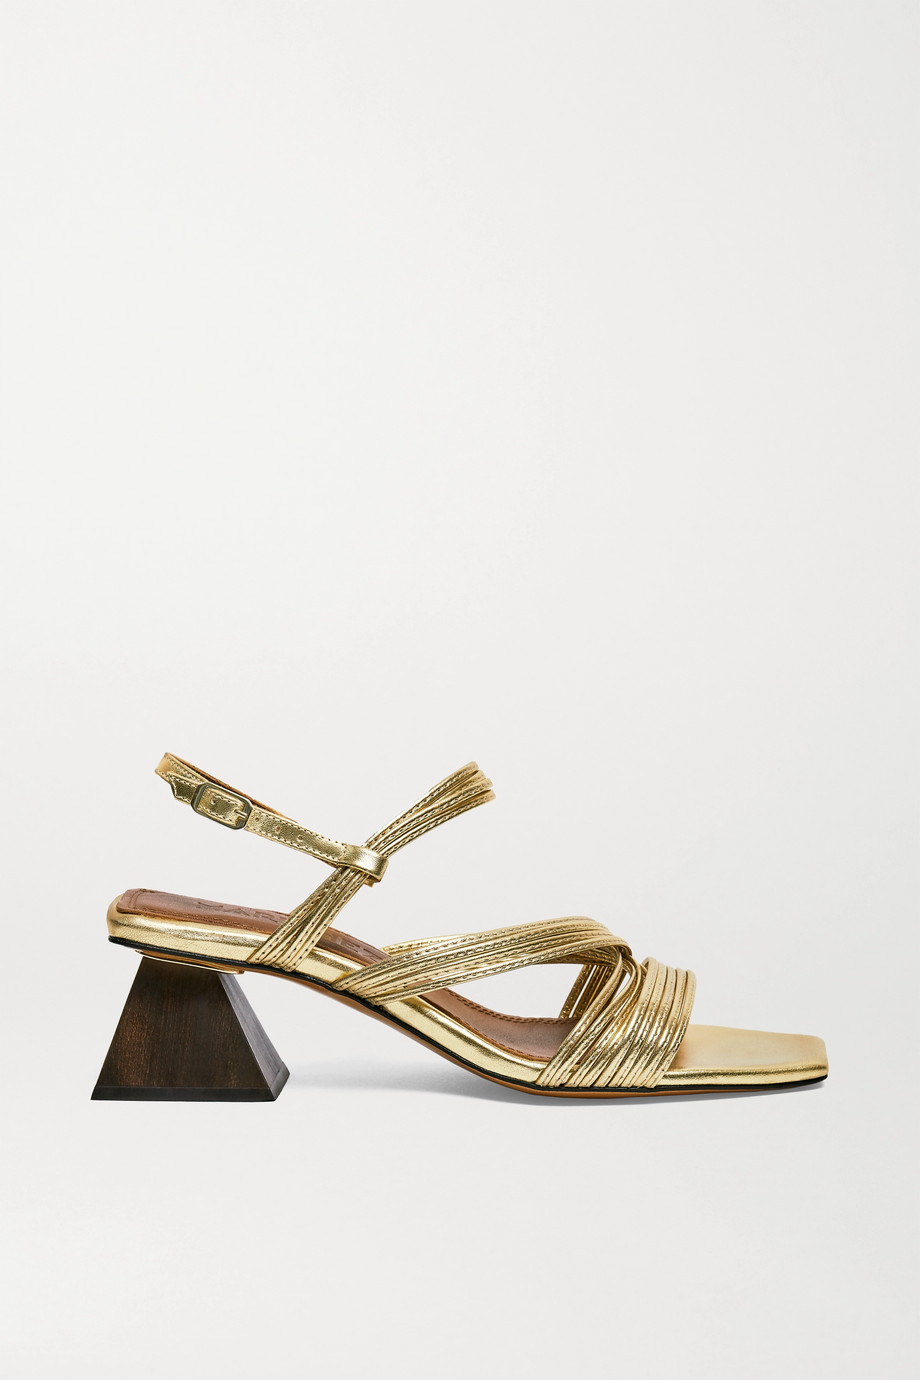 Souliers Martinez Penelope 55 metallic leather slingback sandals